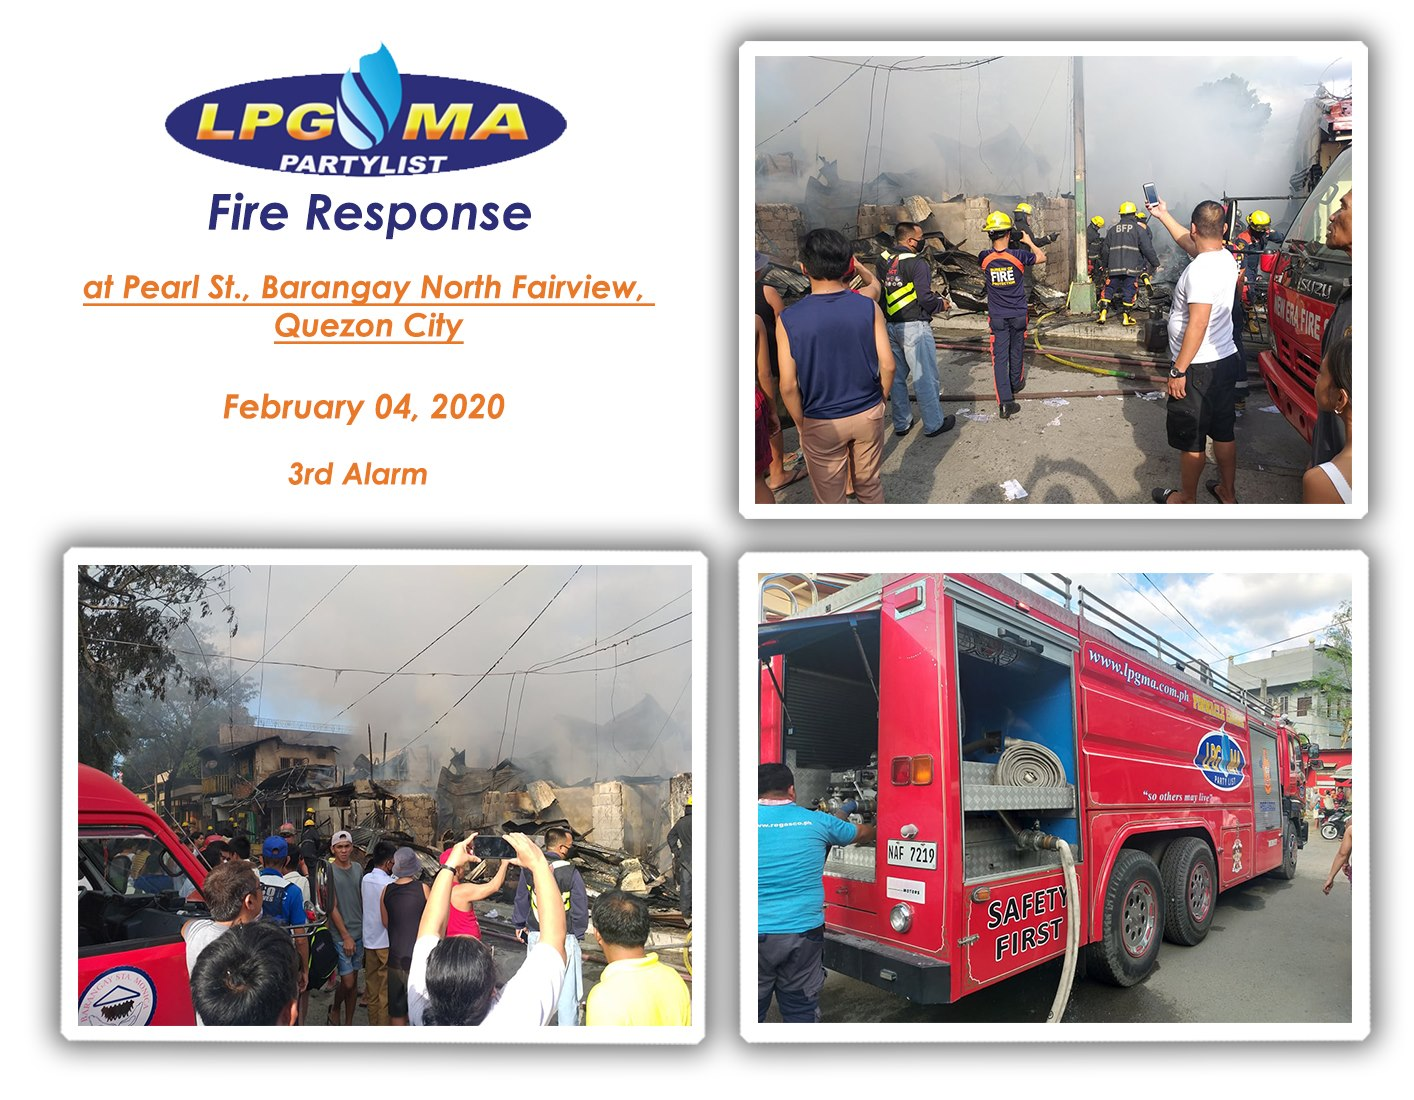 lpgma-fire-response-fairview